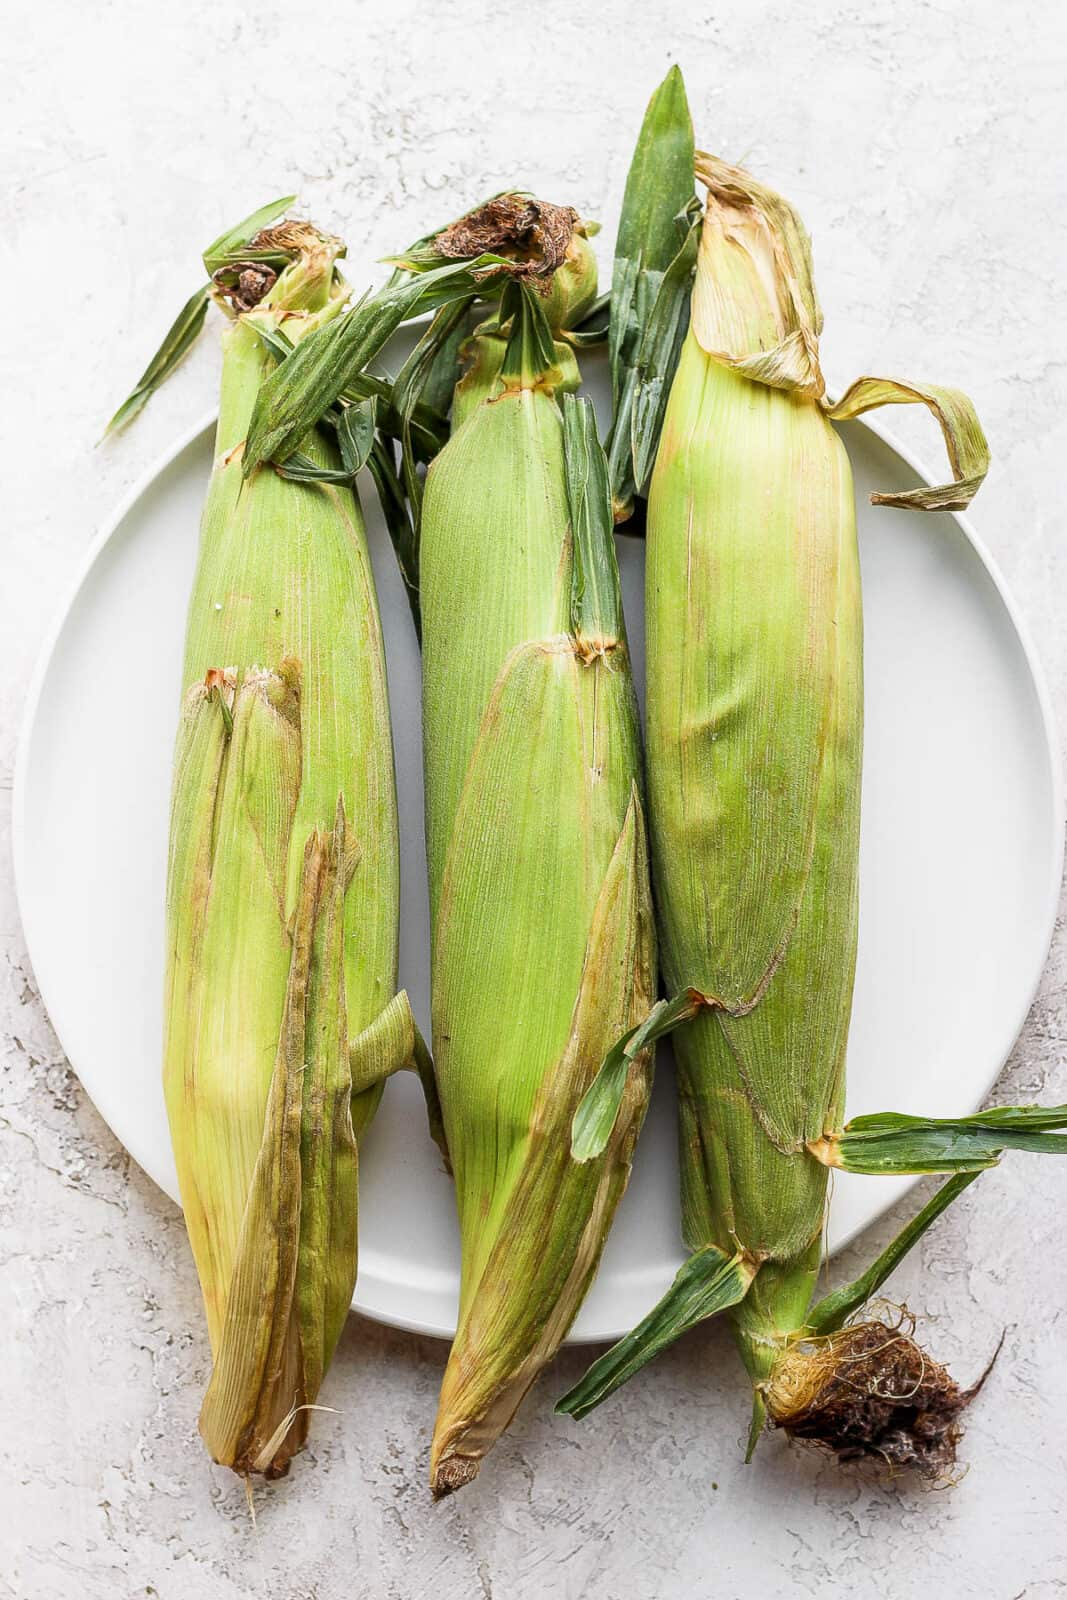 Three pieces of corn with husks on on a plate.